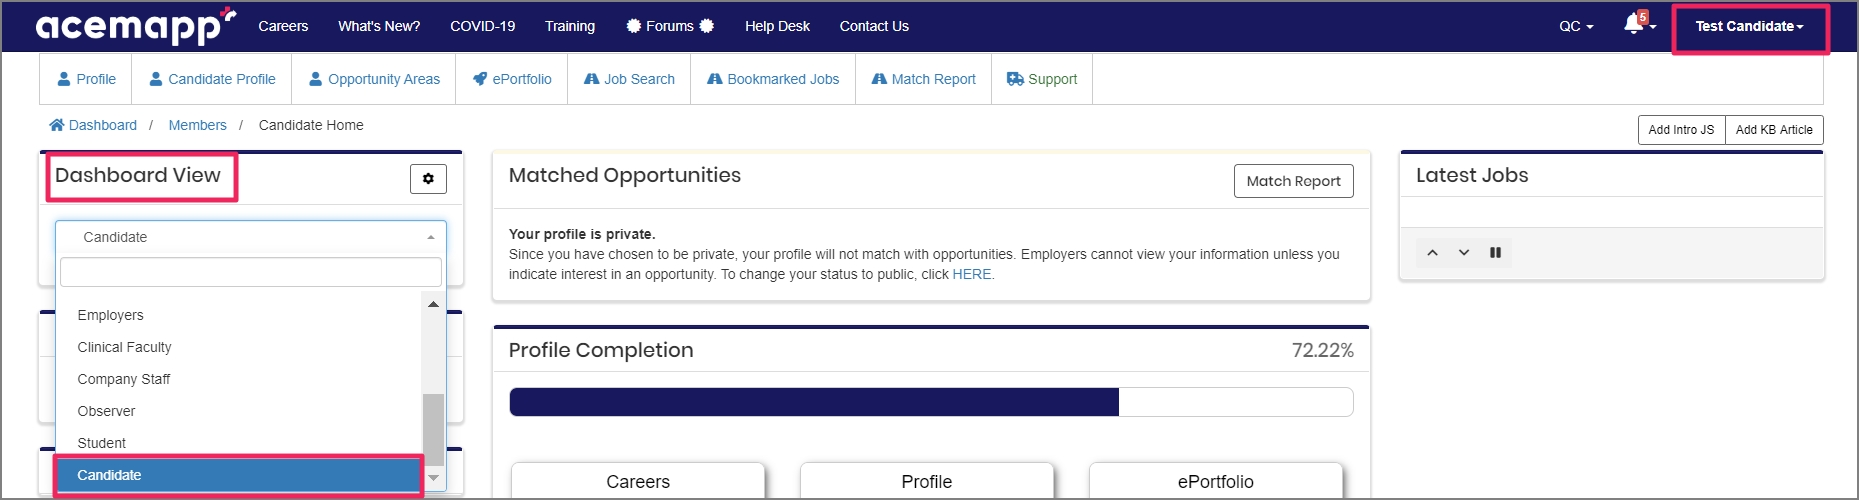 member dashboard view showing Candidate option from drop-down